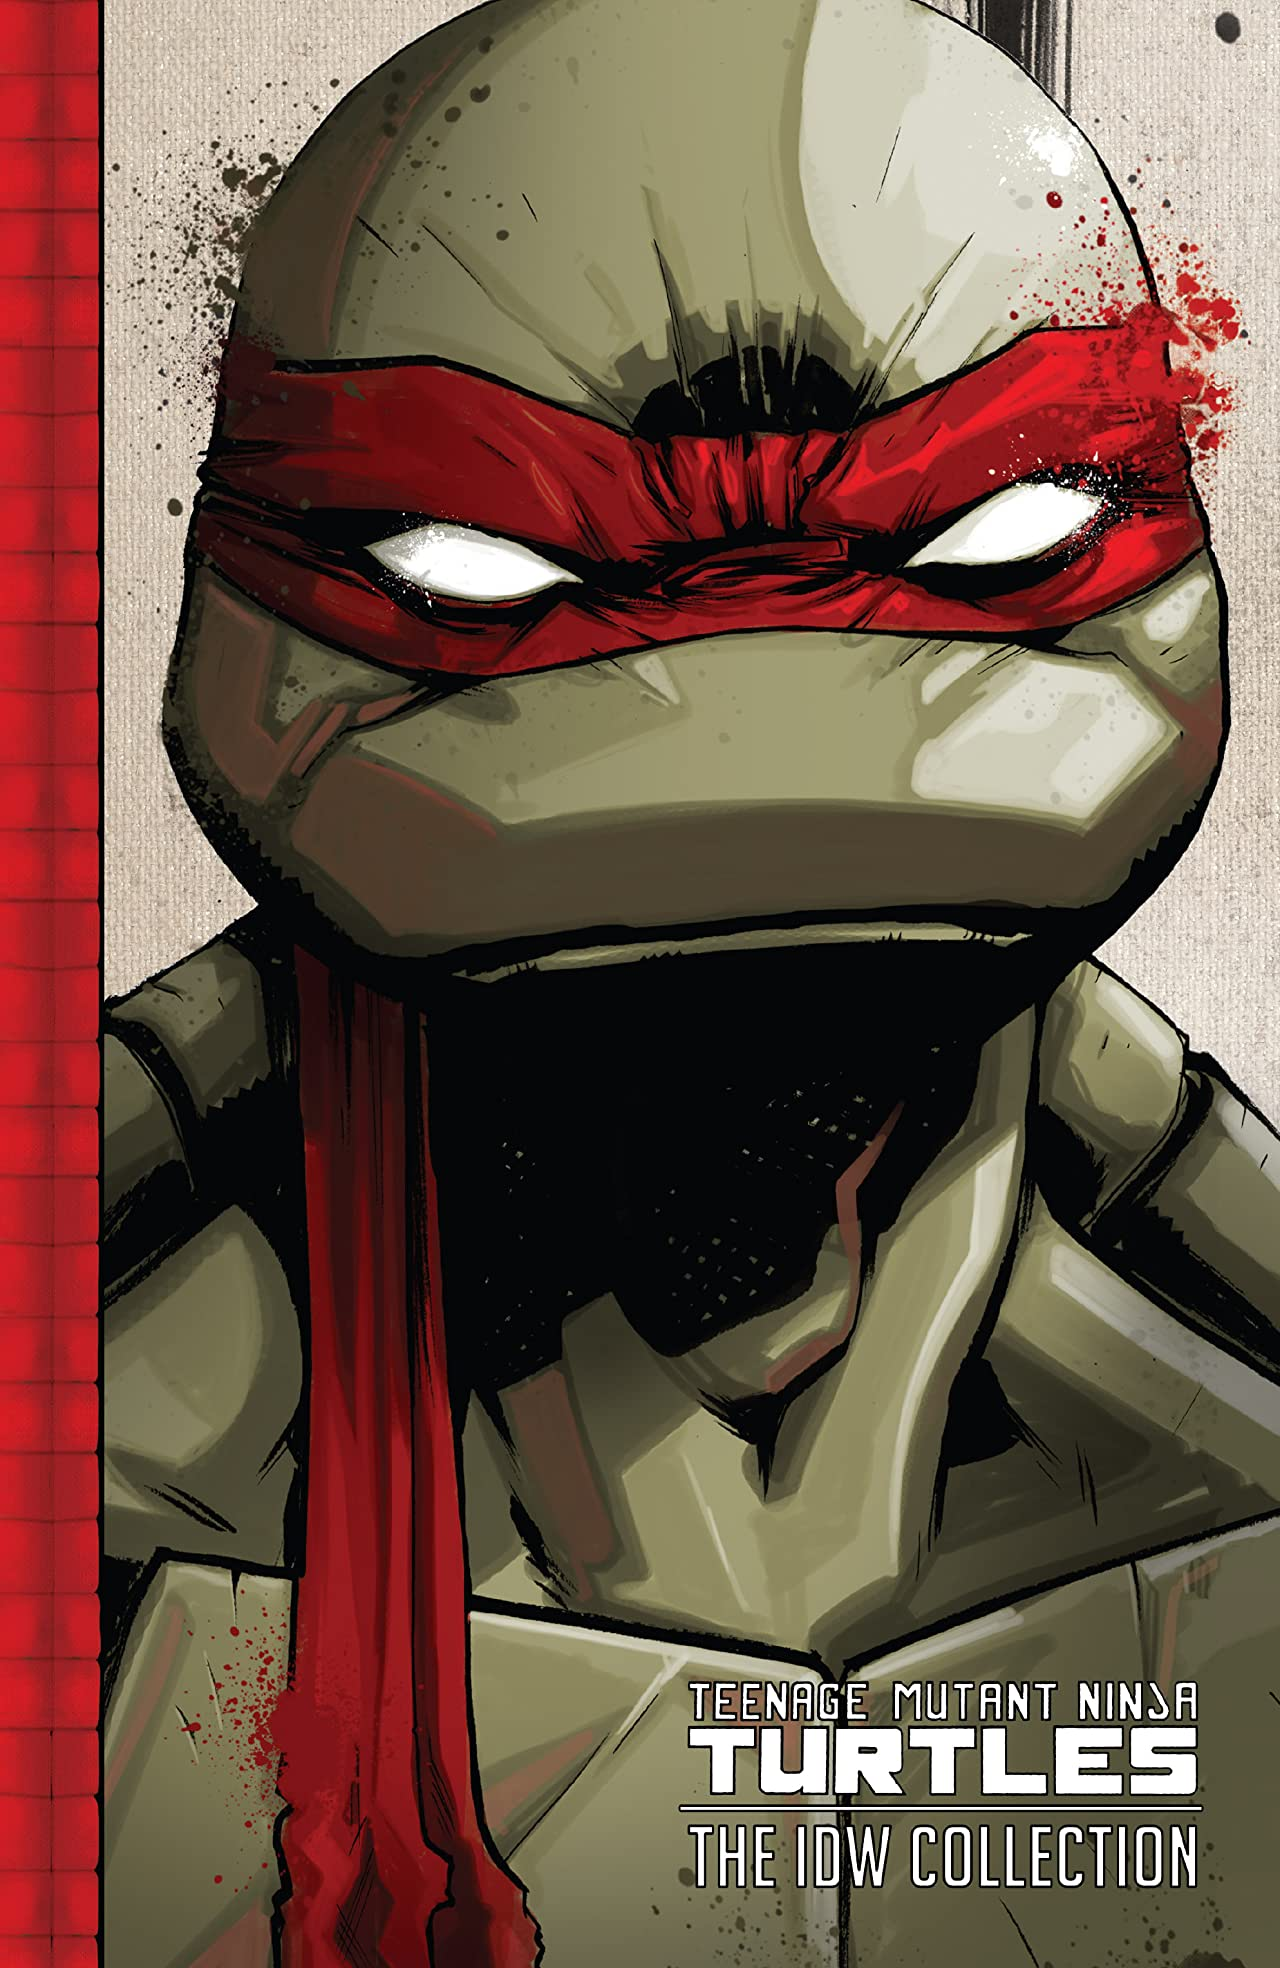 Teenage Mutant Ninja Turtles: The IDW Collection Tome 1